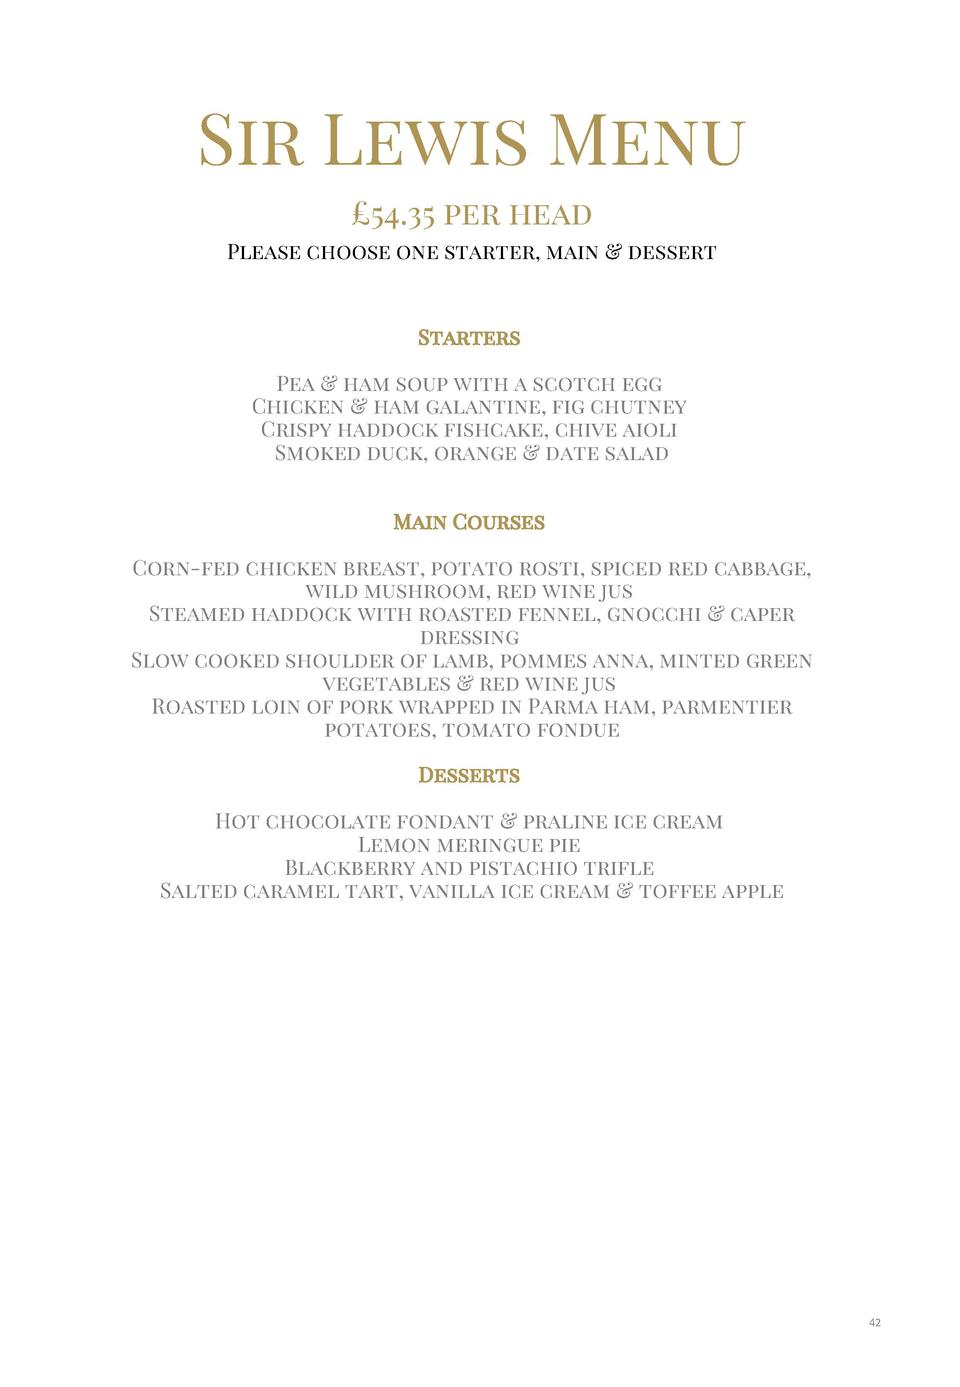 Sir Lewis Menu   54.35 per head Please choose one starter, main   dessert  Starters  Pea   ham soup with a scotch egg Chic...